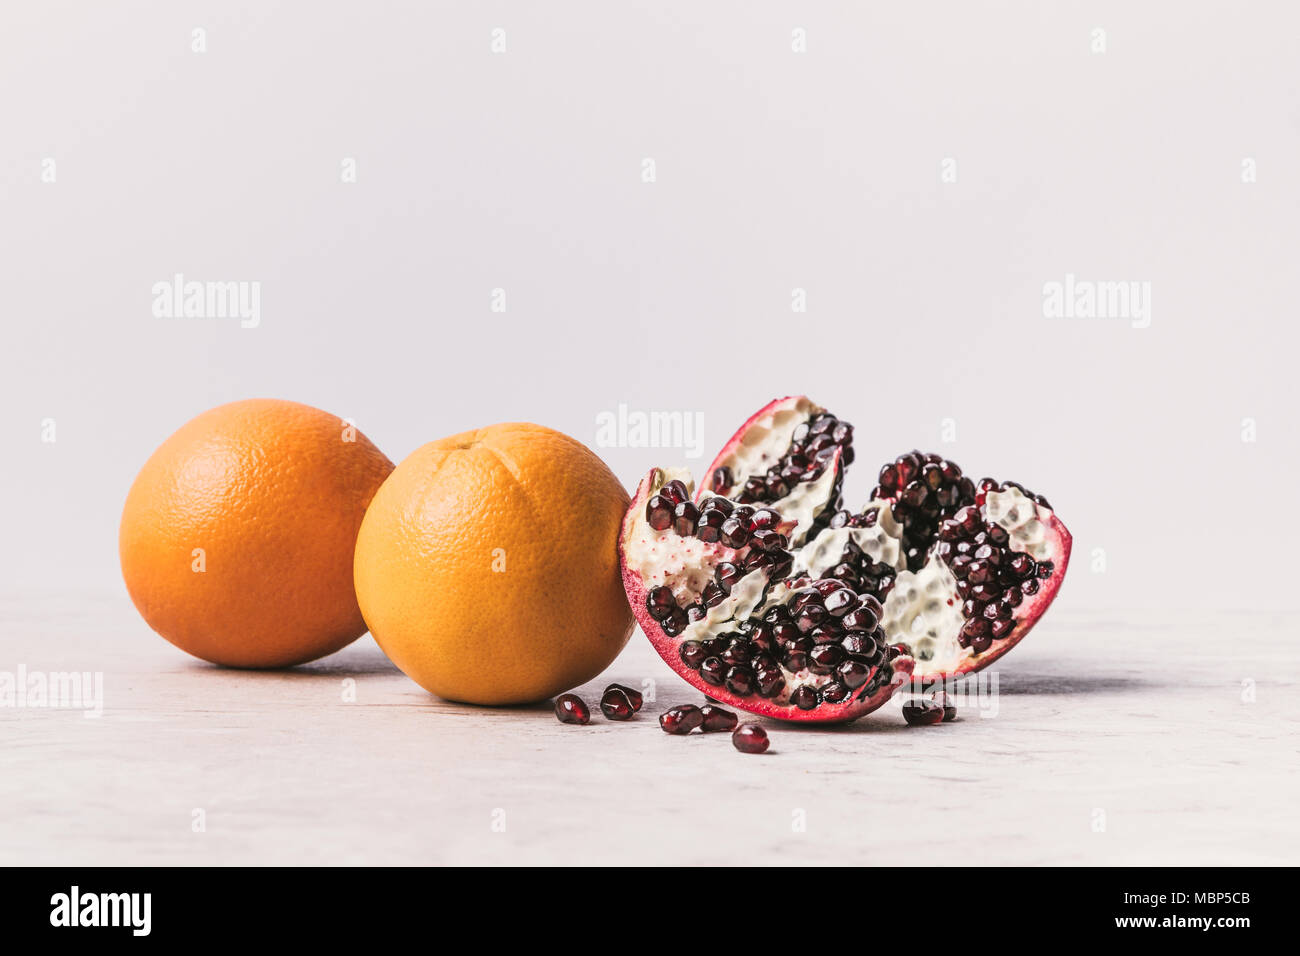 ripe delicious oranges and pomegranate on marble surface - Stock Image